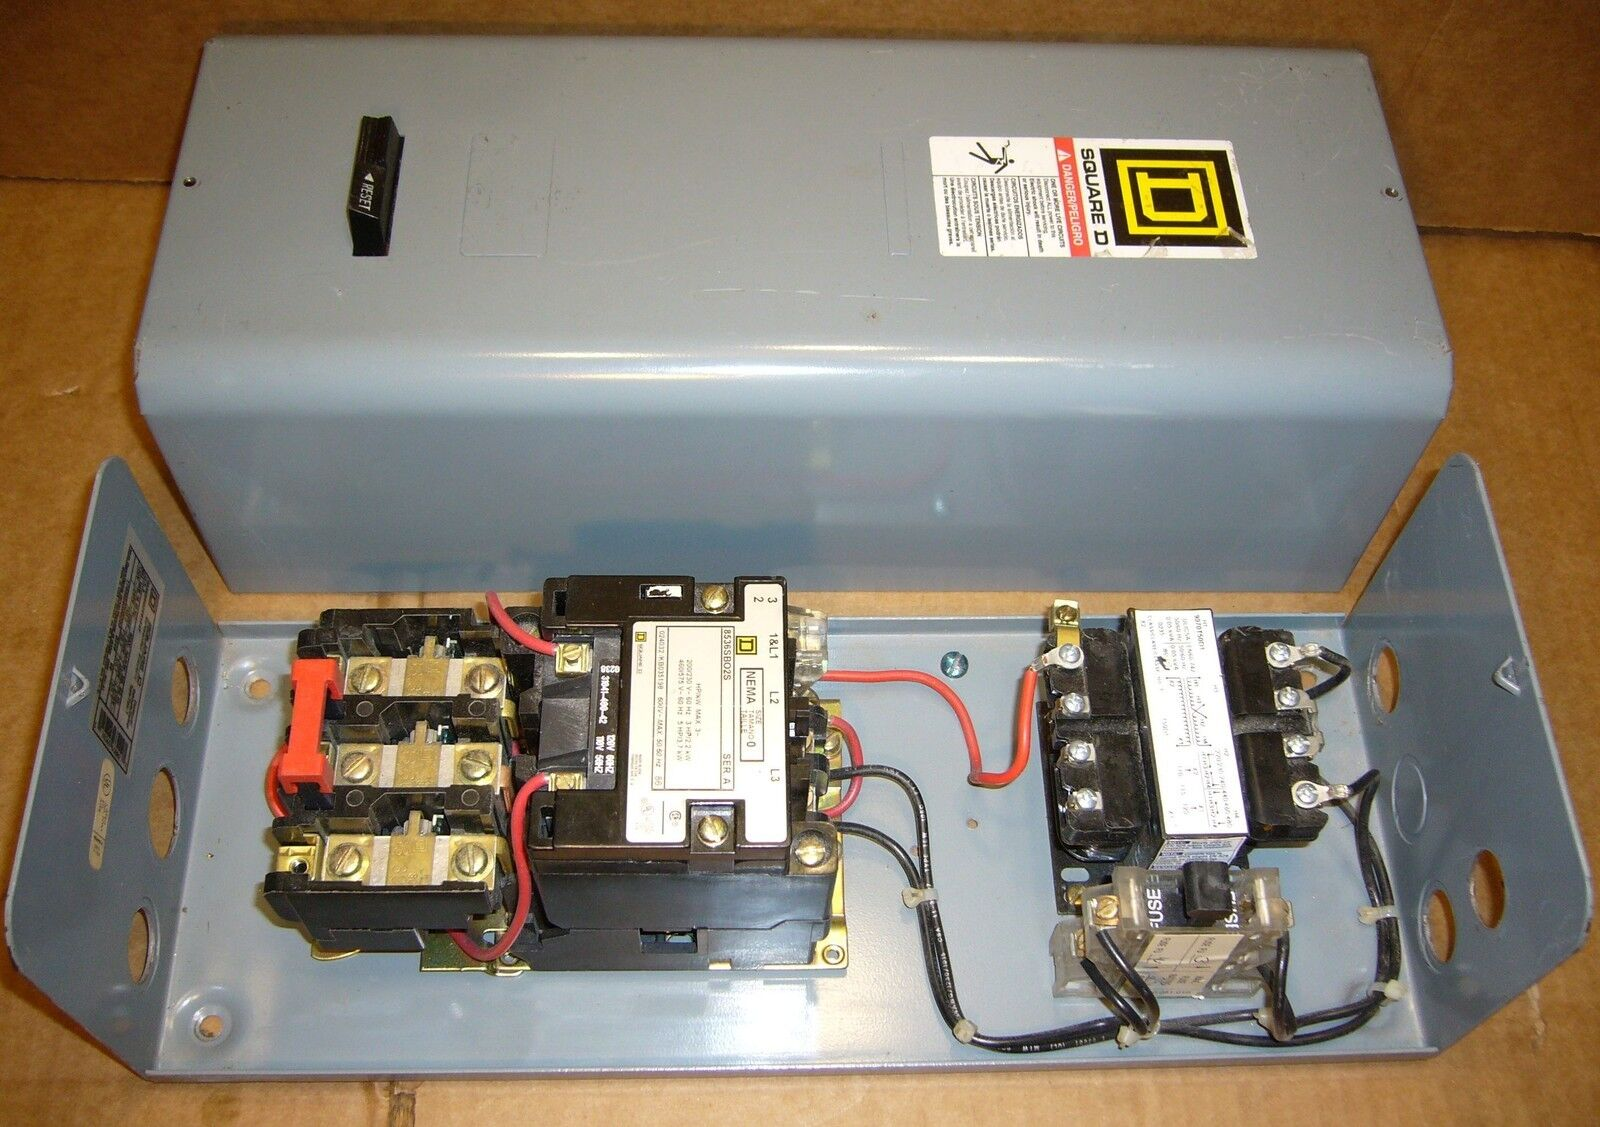 Square D Nema Size 0 Starter With B330 Heater Elements 1 Wiring Diagram 2 Of 6 8536sbg2v81f4t 8536sbo2s